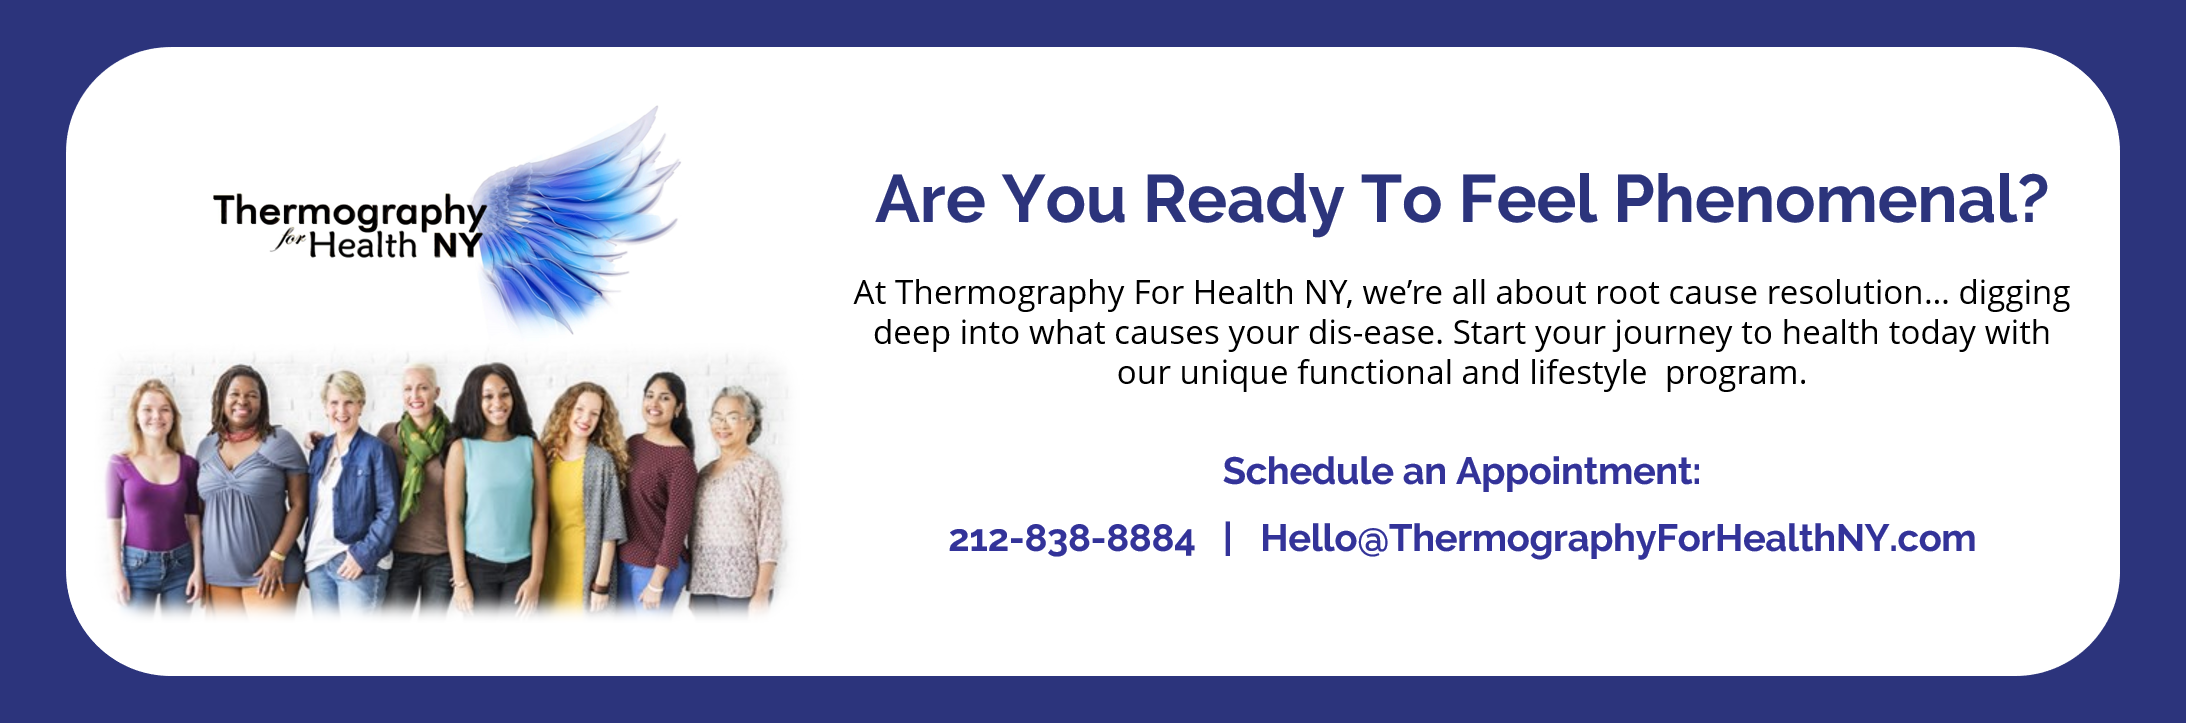 Thermography For Health New York reviews | Diagnostic Imaging at 120 E 56th St. - New York NY